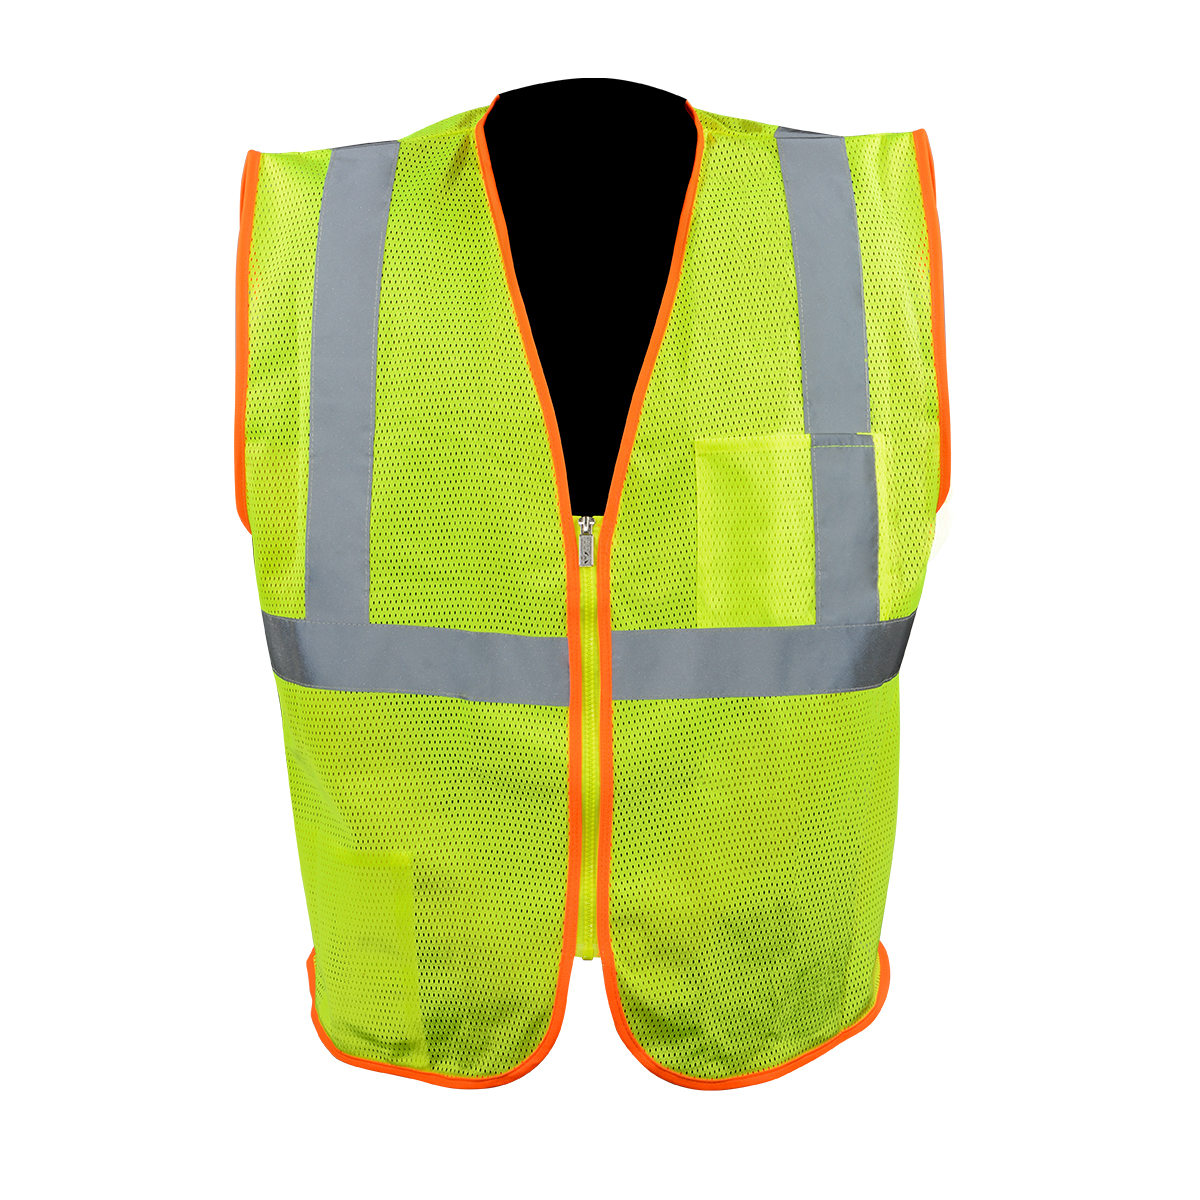 ANSI Class 2 High Visibility Safety Vest with Zipper